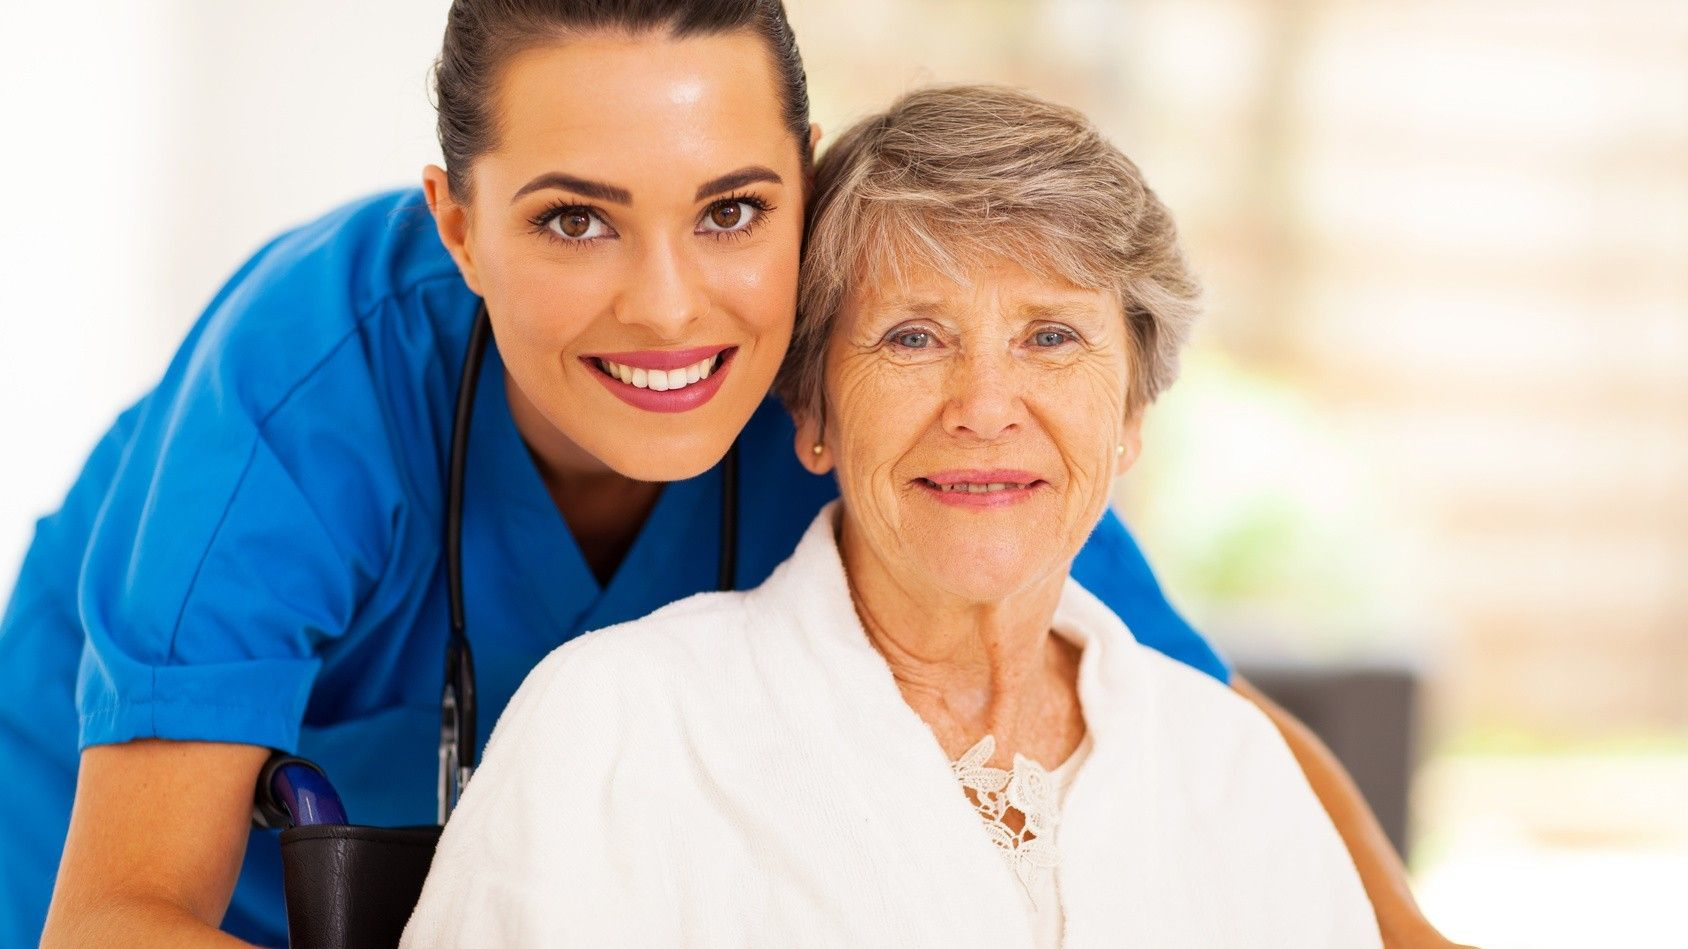 Care Plans Examples Nursing care plan, Medical jobs